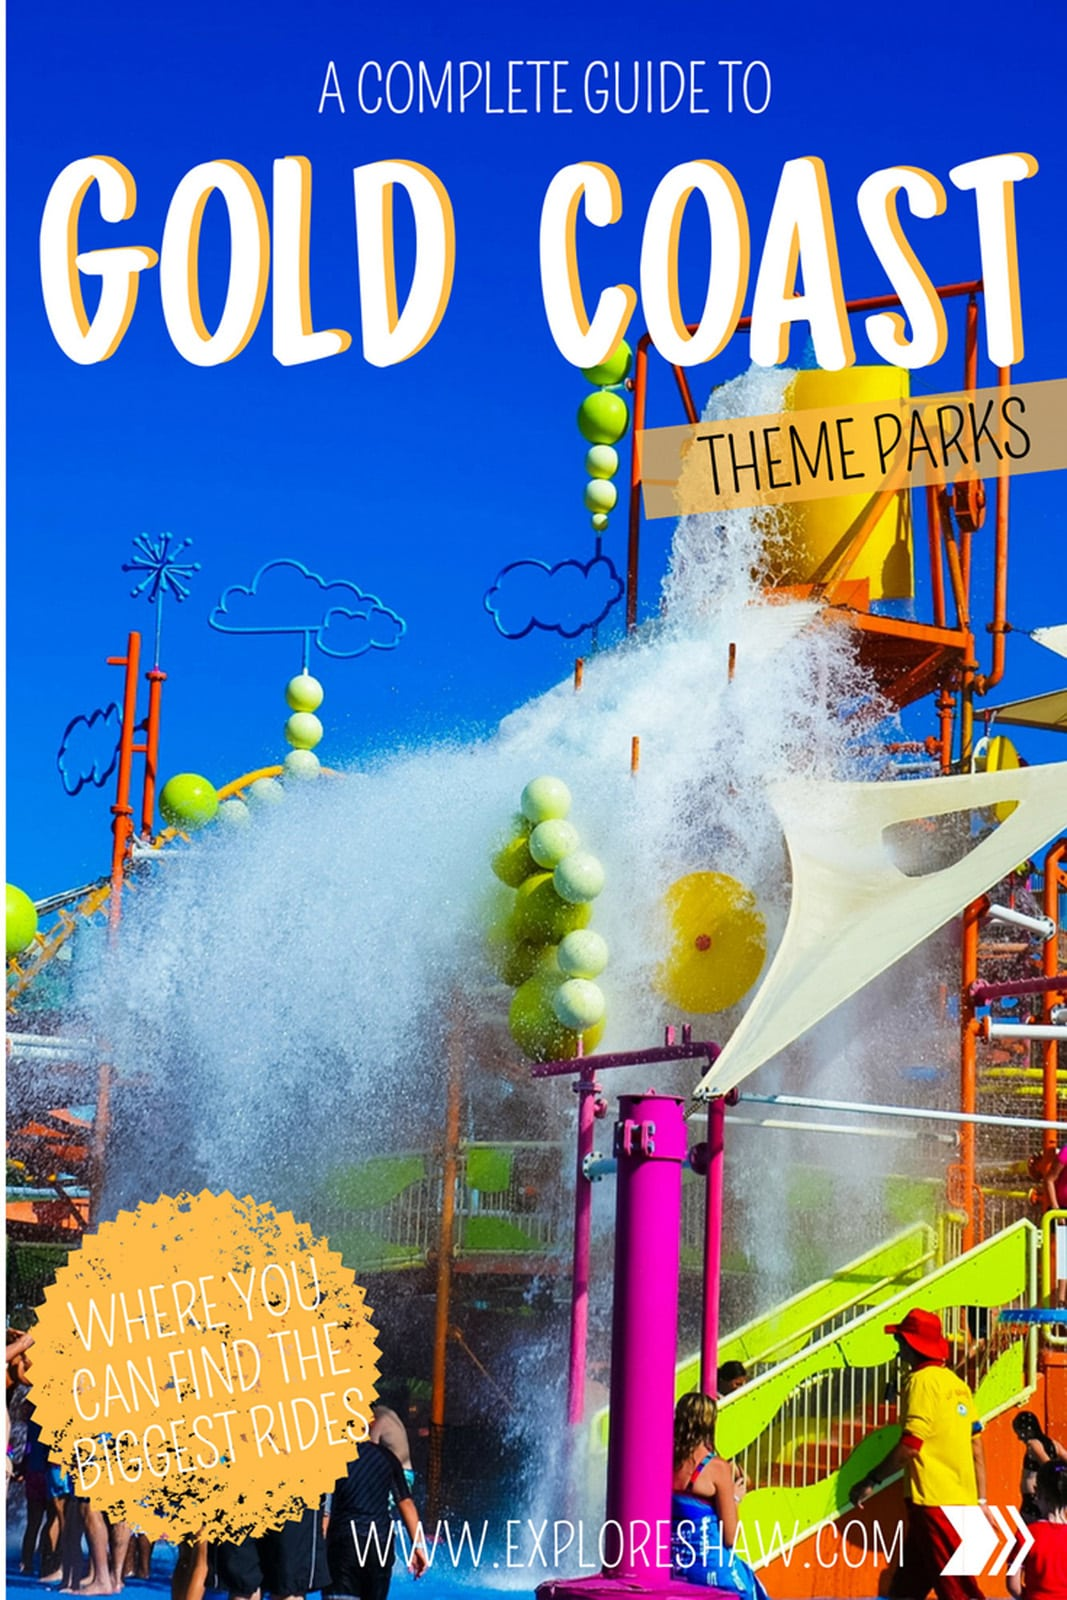 The Gold Coast is the ultimate destination for theme parks in Australia.With five theme parks located close to the heart of the Gold Coast, it's the perfect place to really get your adrenaline pumping on some monster thrill rides.